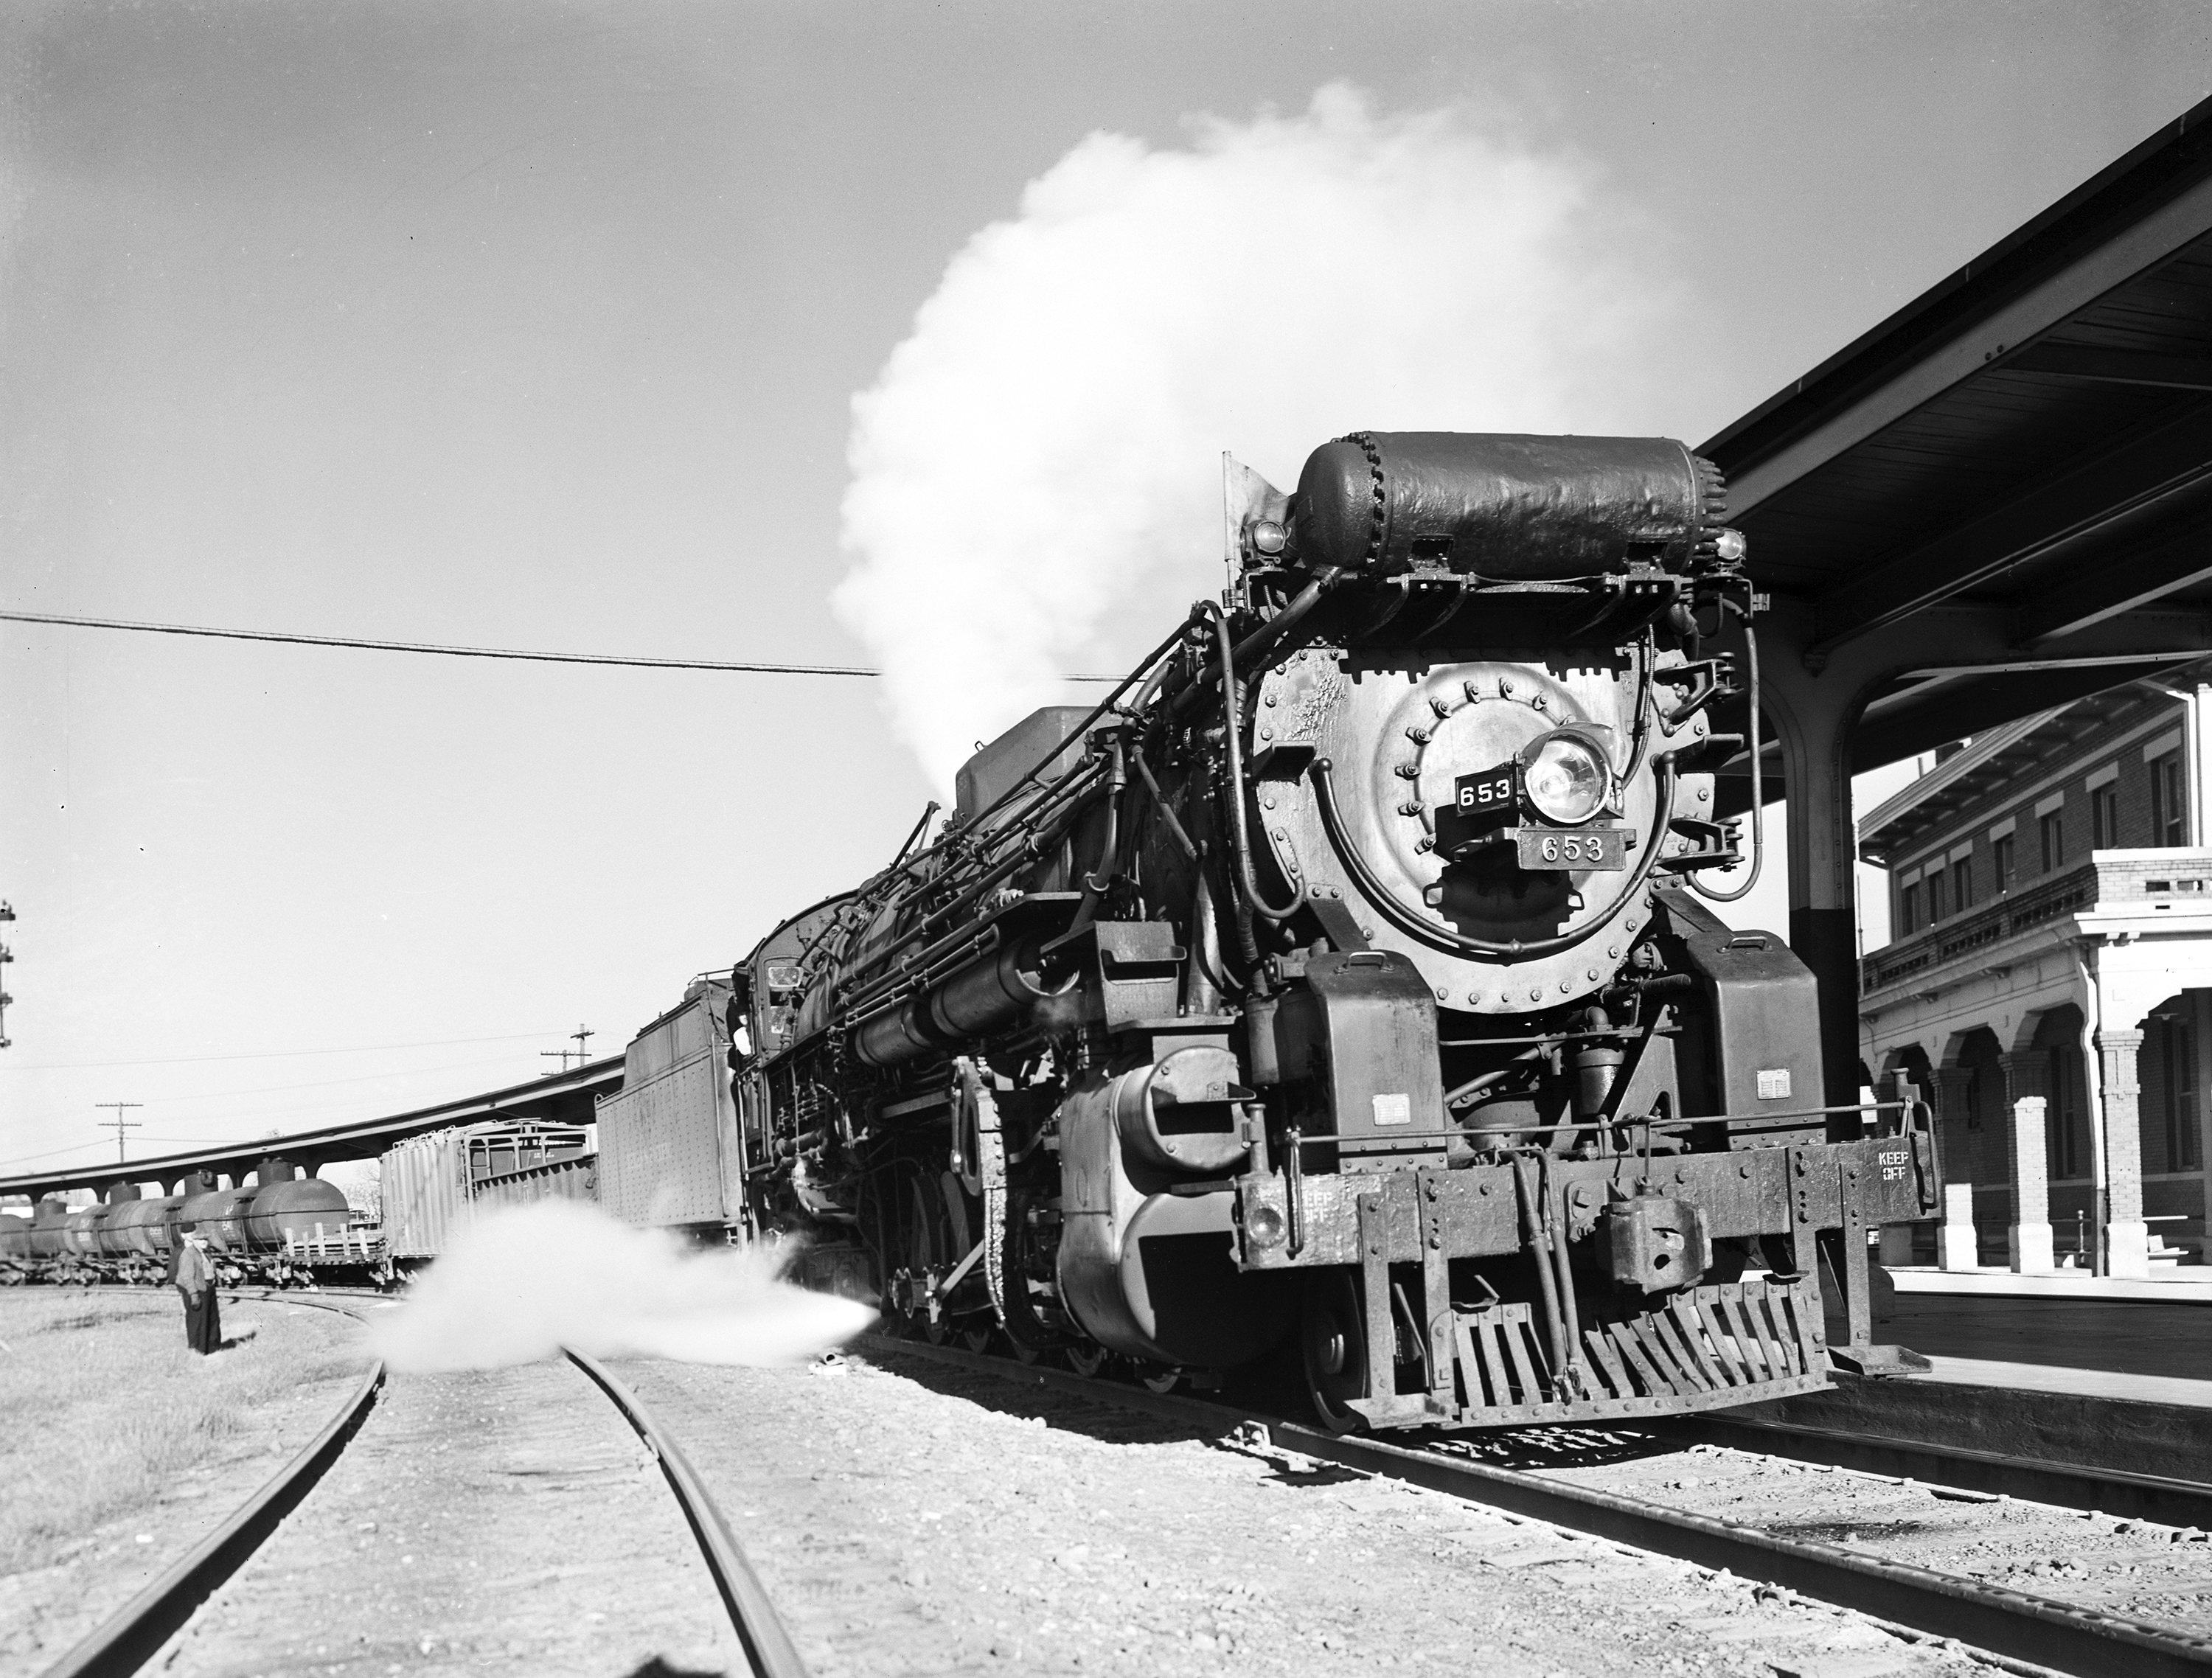 File:Locomotive 653 Arriving at Depot, Texas and Pacific ... Pacific Railway Company